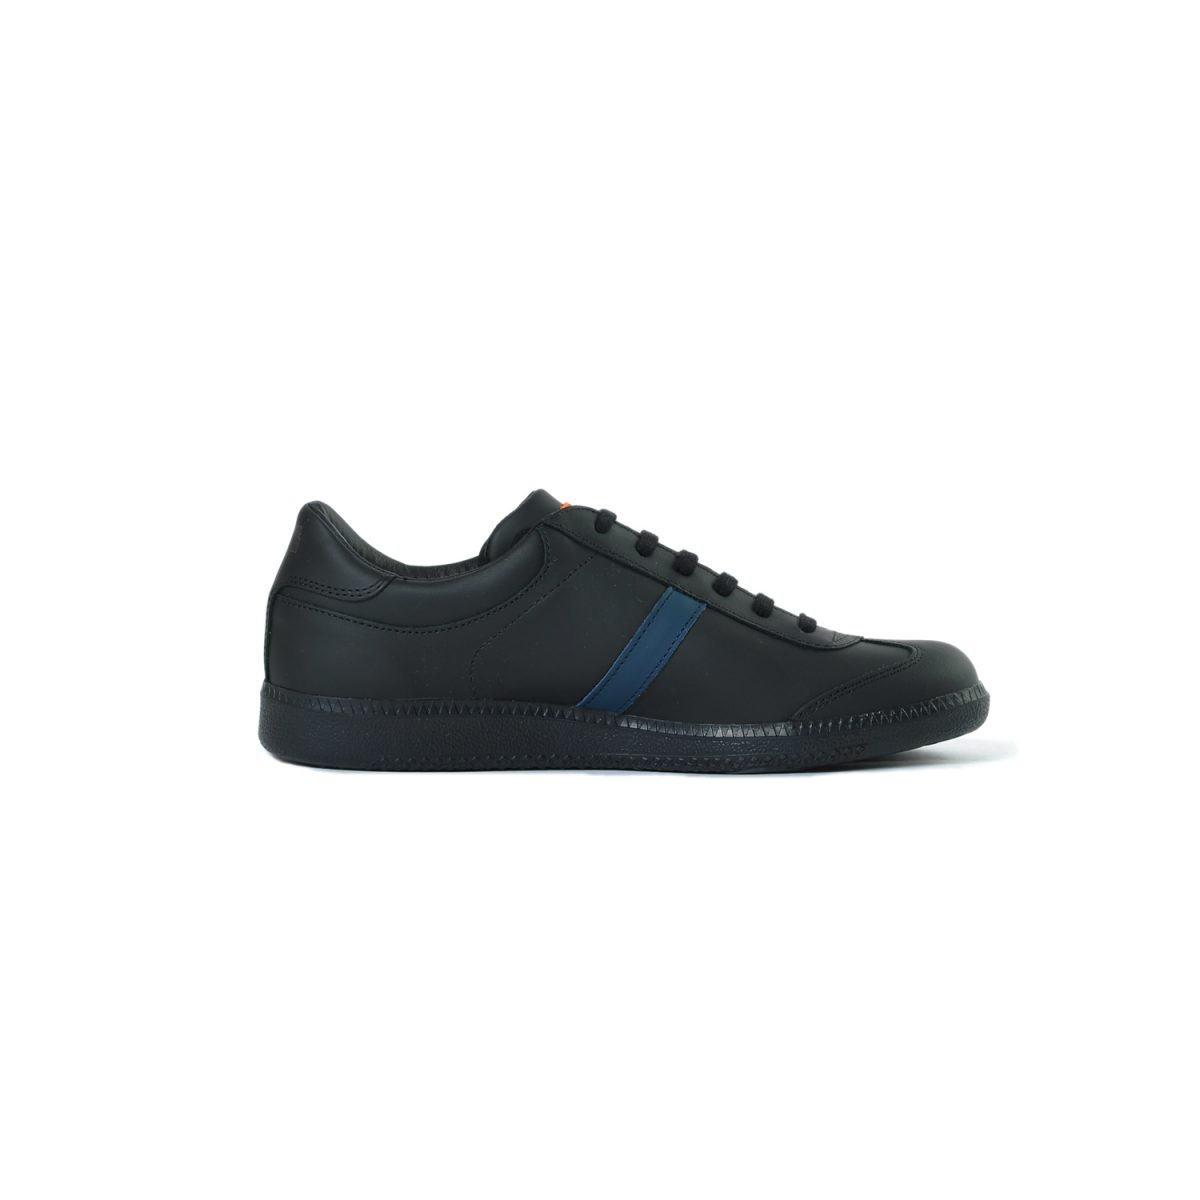 Tisza shoes - Compakt - Black-mix